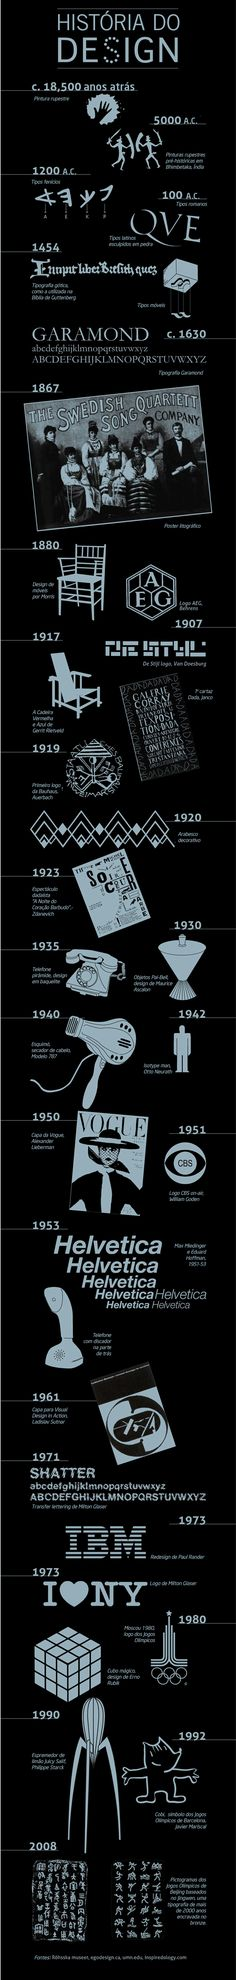 Of Graphic Design [INFOGRAPHIC] Neat about the history of design. What do you think? Do cave paintings = graphic design?Neat about the history of design. What do you think? Do cave paintings = graphic design? Web Design, Media Design, Design Art, Design Ideas, Interior Design, Design Thinking, Hand Logo, Information Graphics, Design Graphique